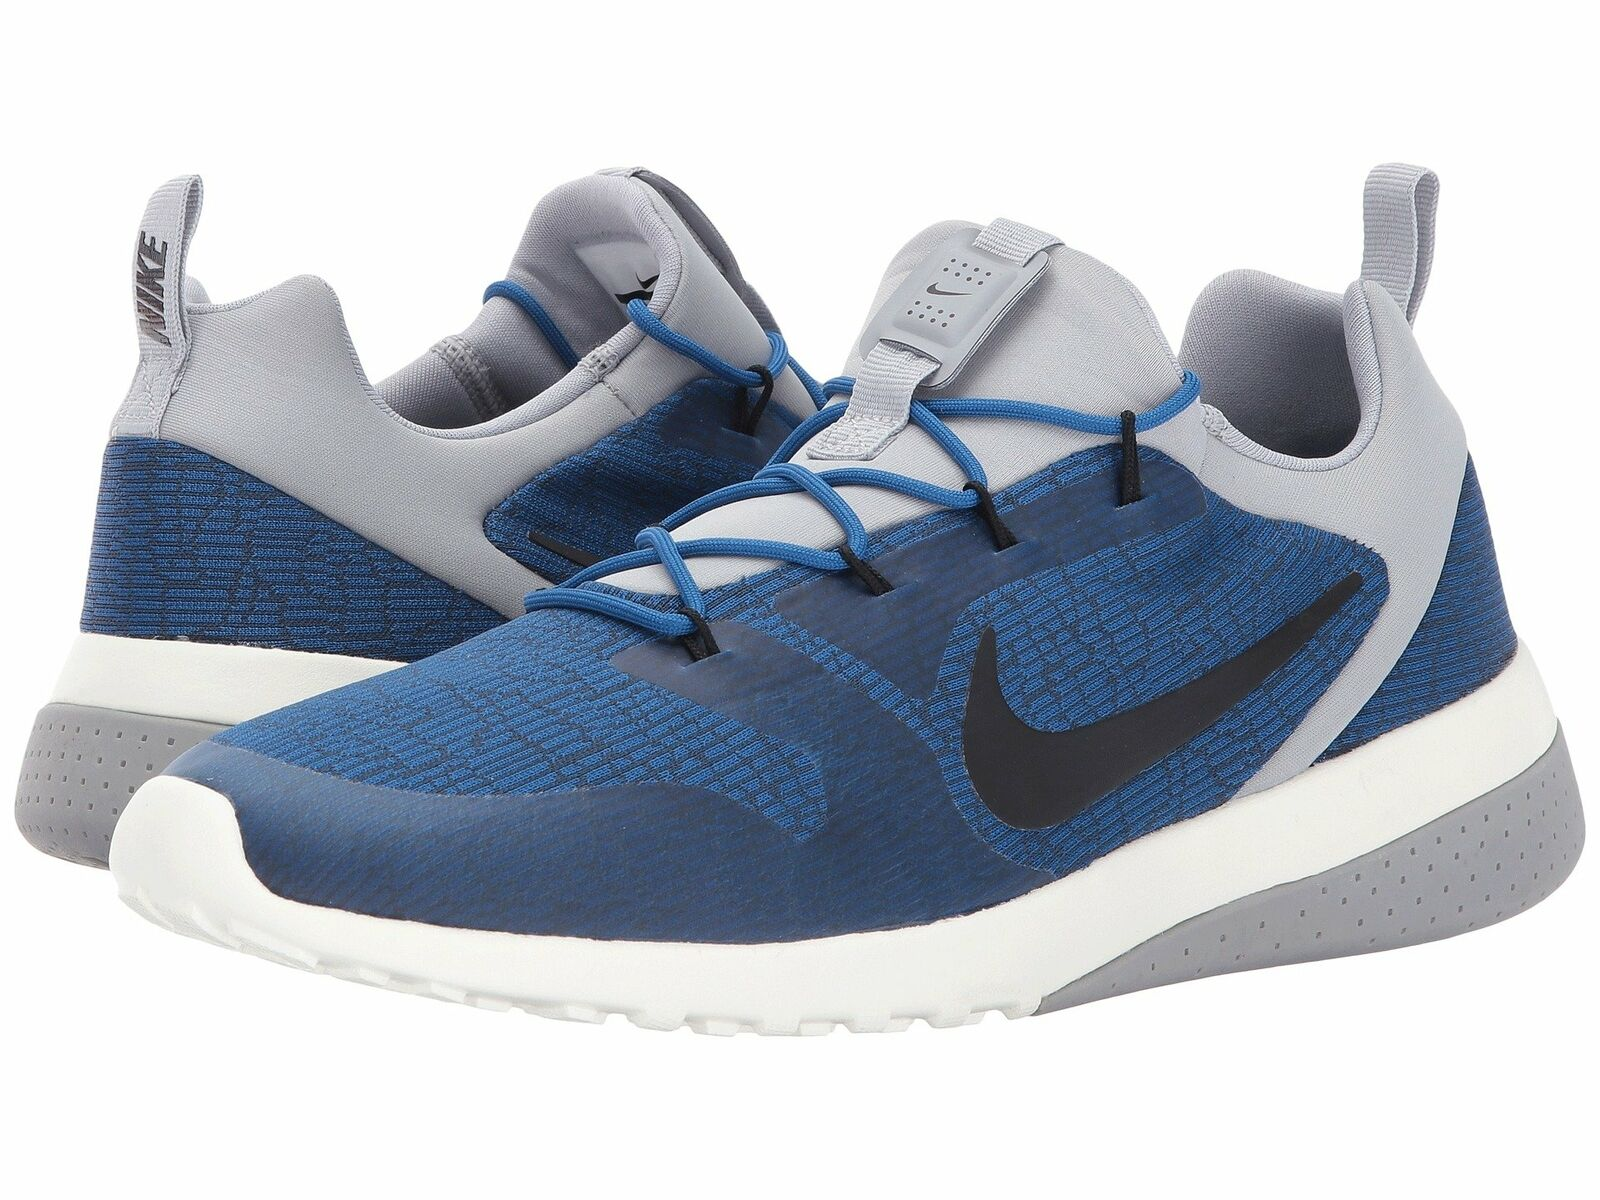 Nike Mens CK Racer Fabric Low Top Lace Up Running Sneaker